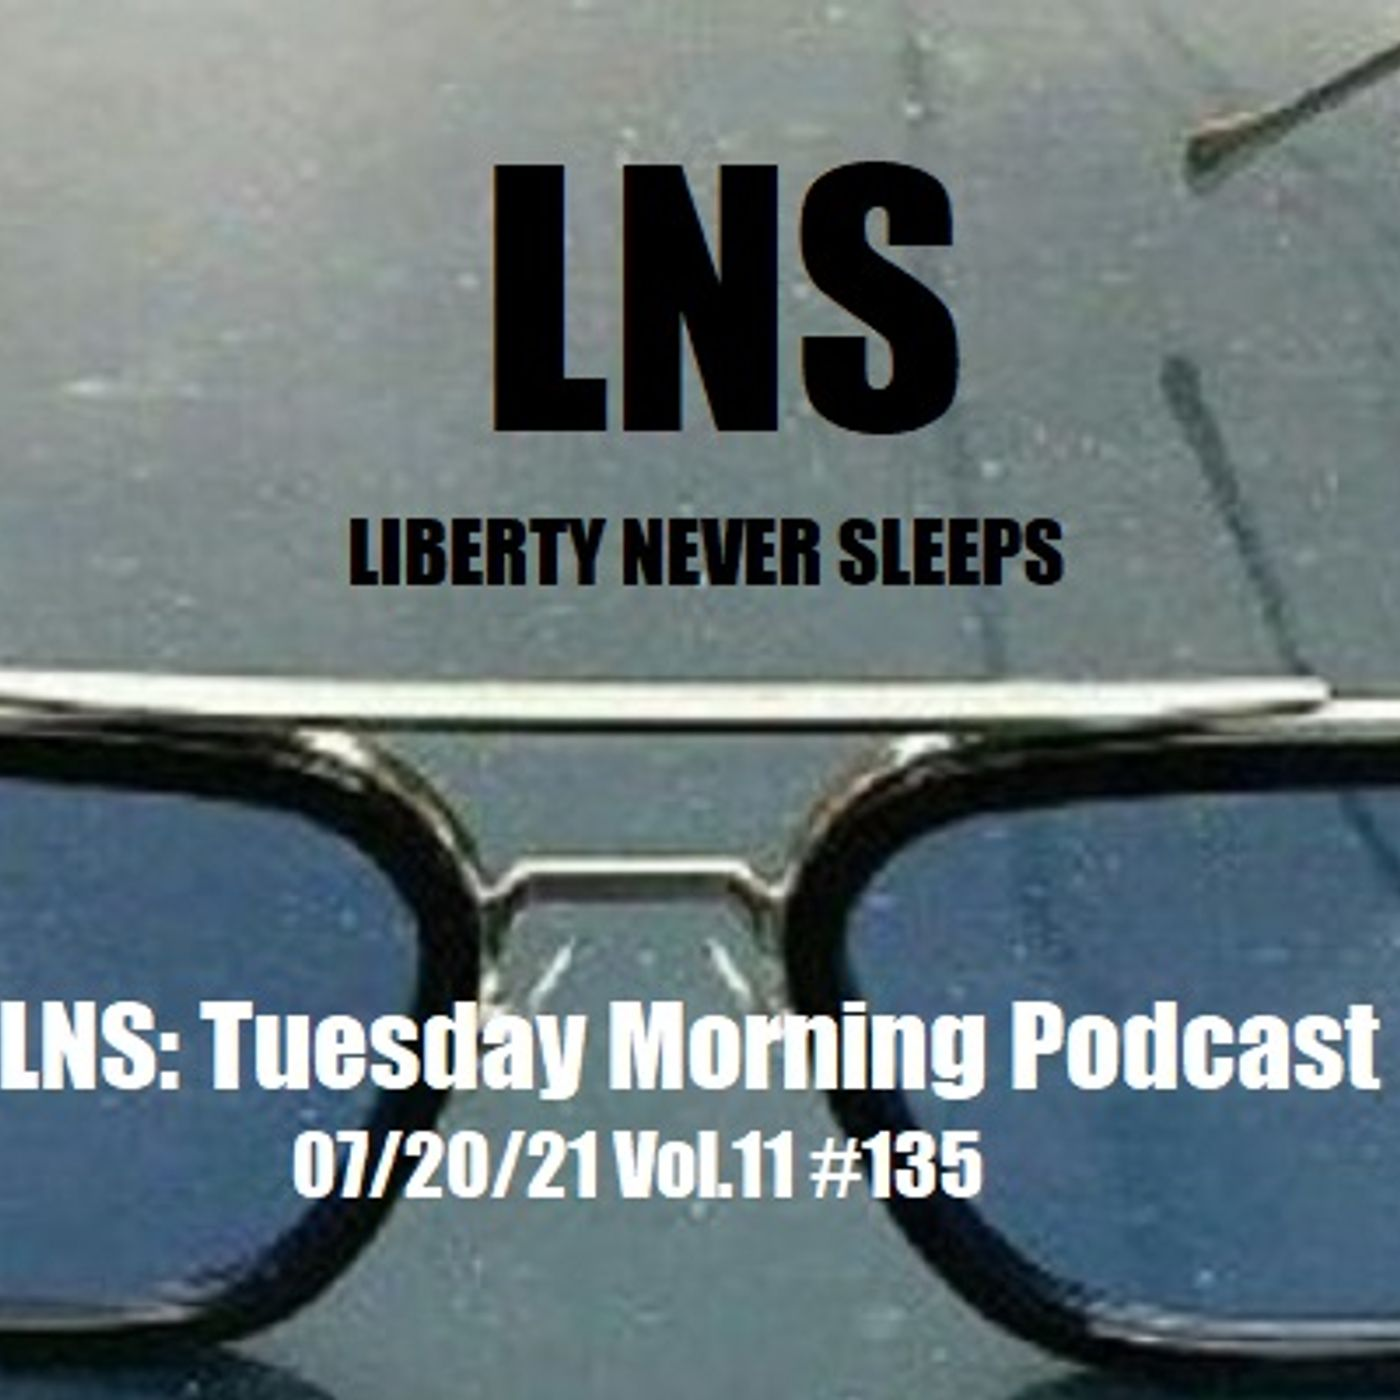 LNS: Tuesday Morning Podcast 07/20/21 Vol.11 #135